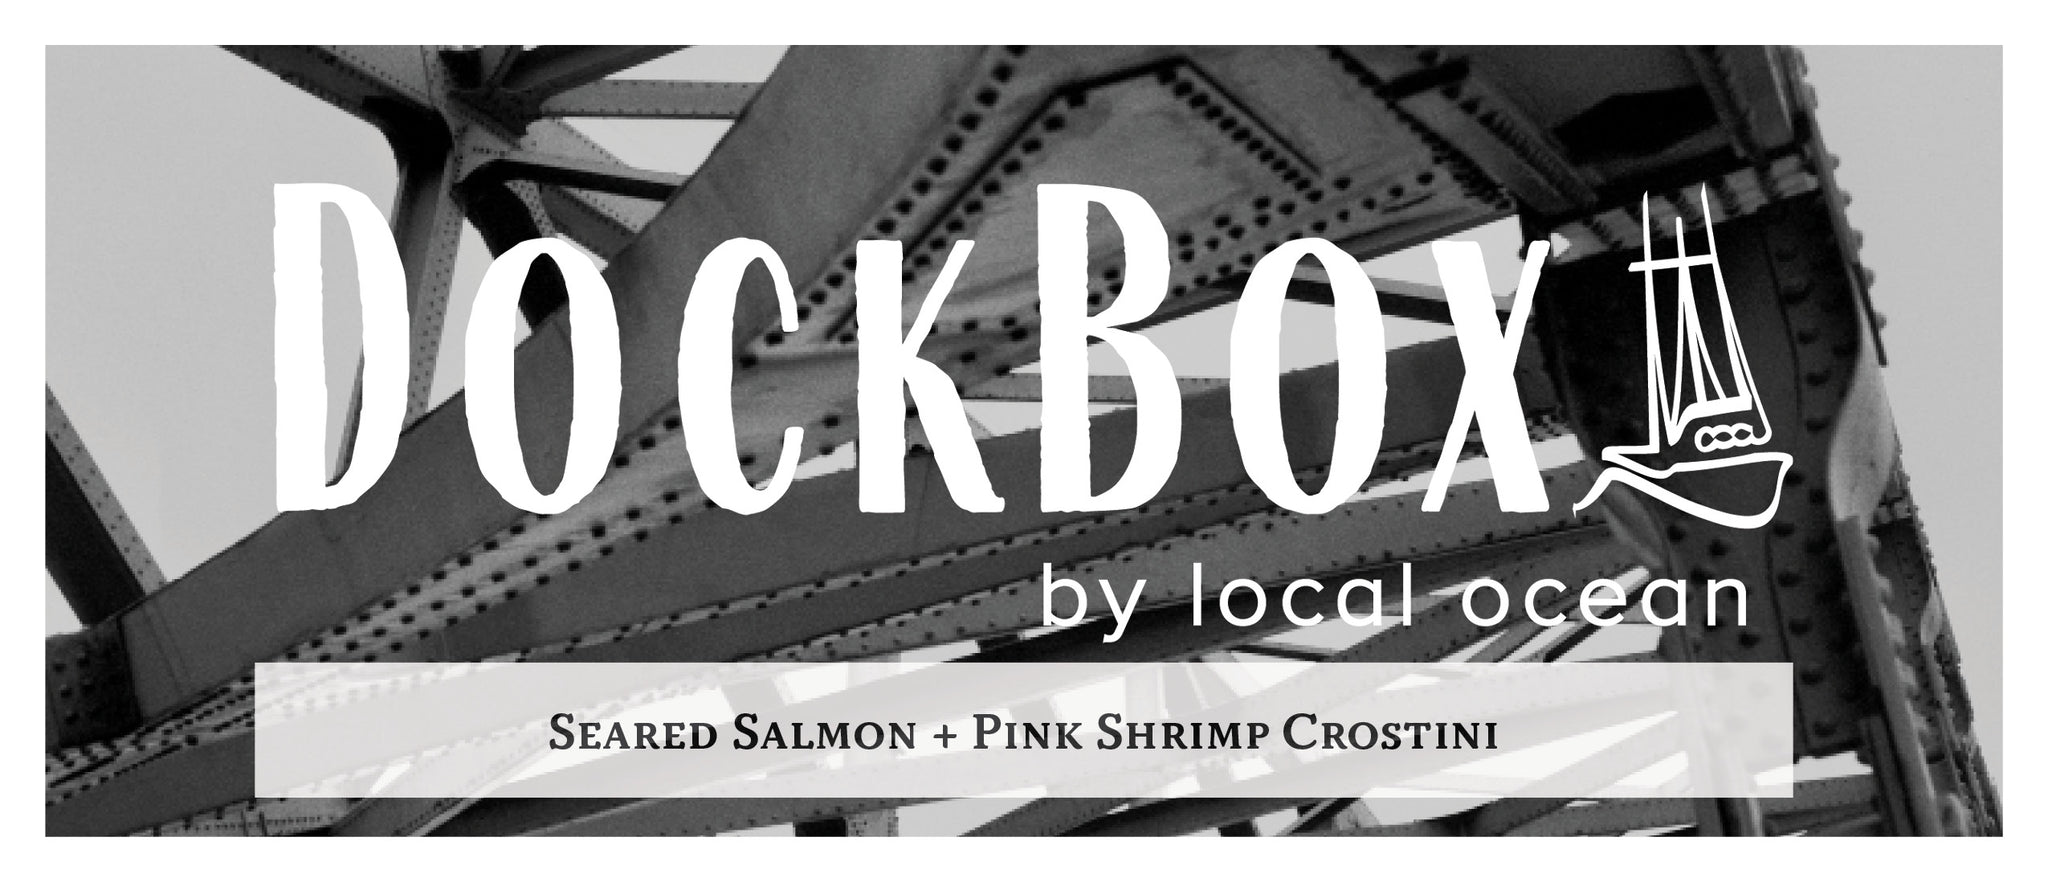 Box #22: Pink Shrimp Crostini + Seared Salmon